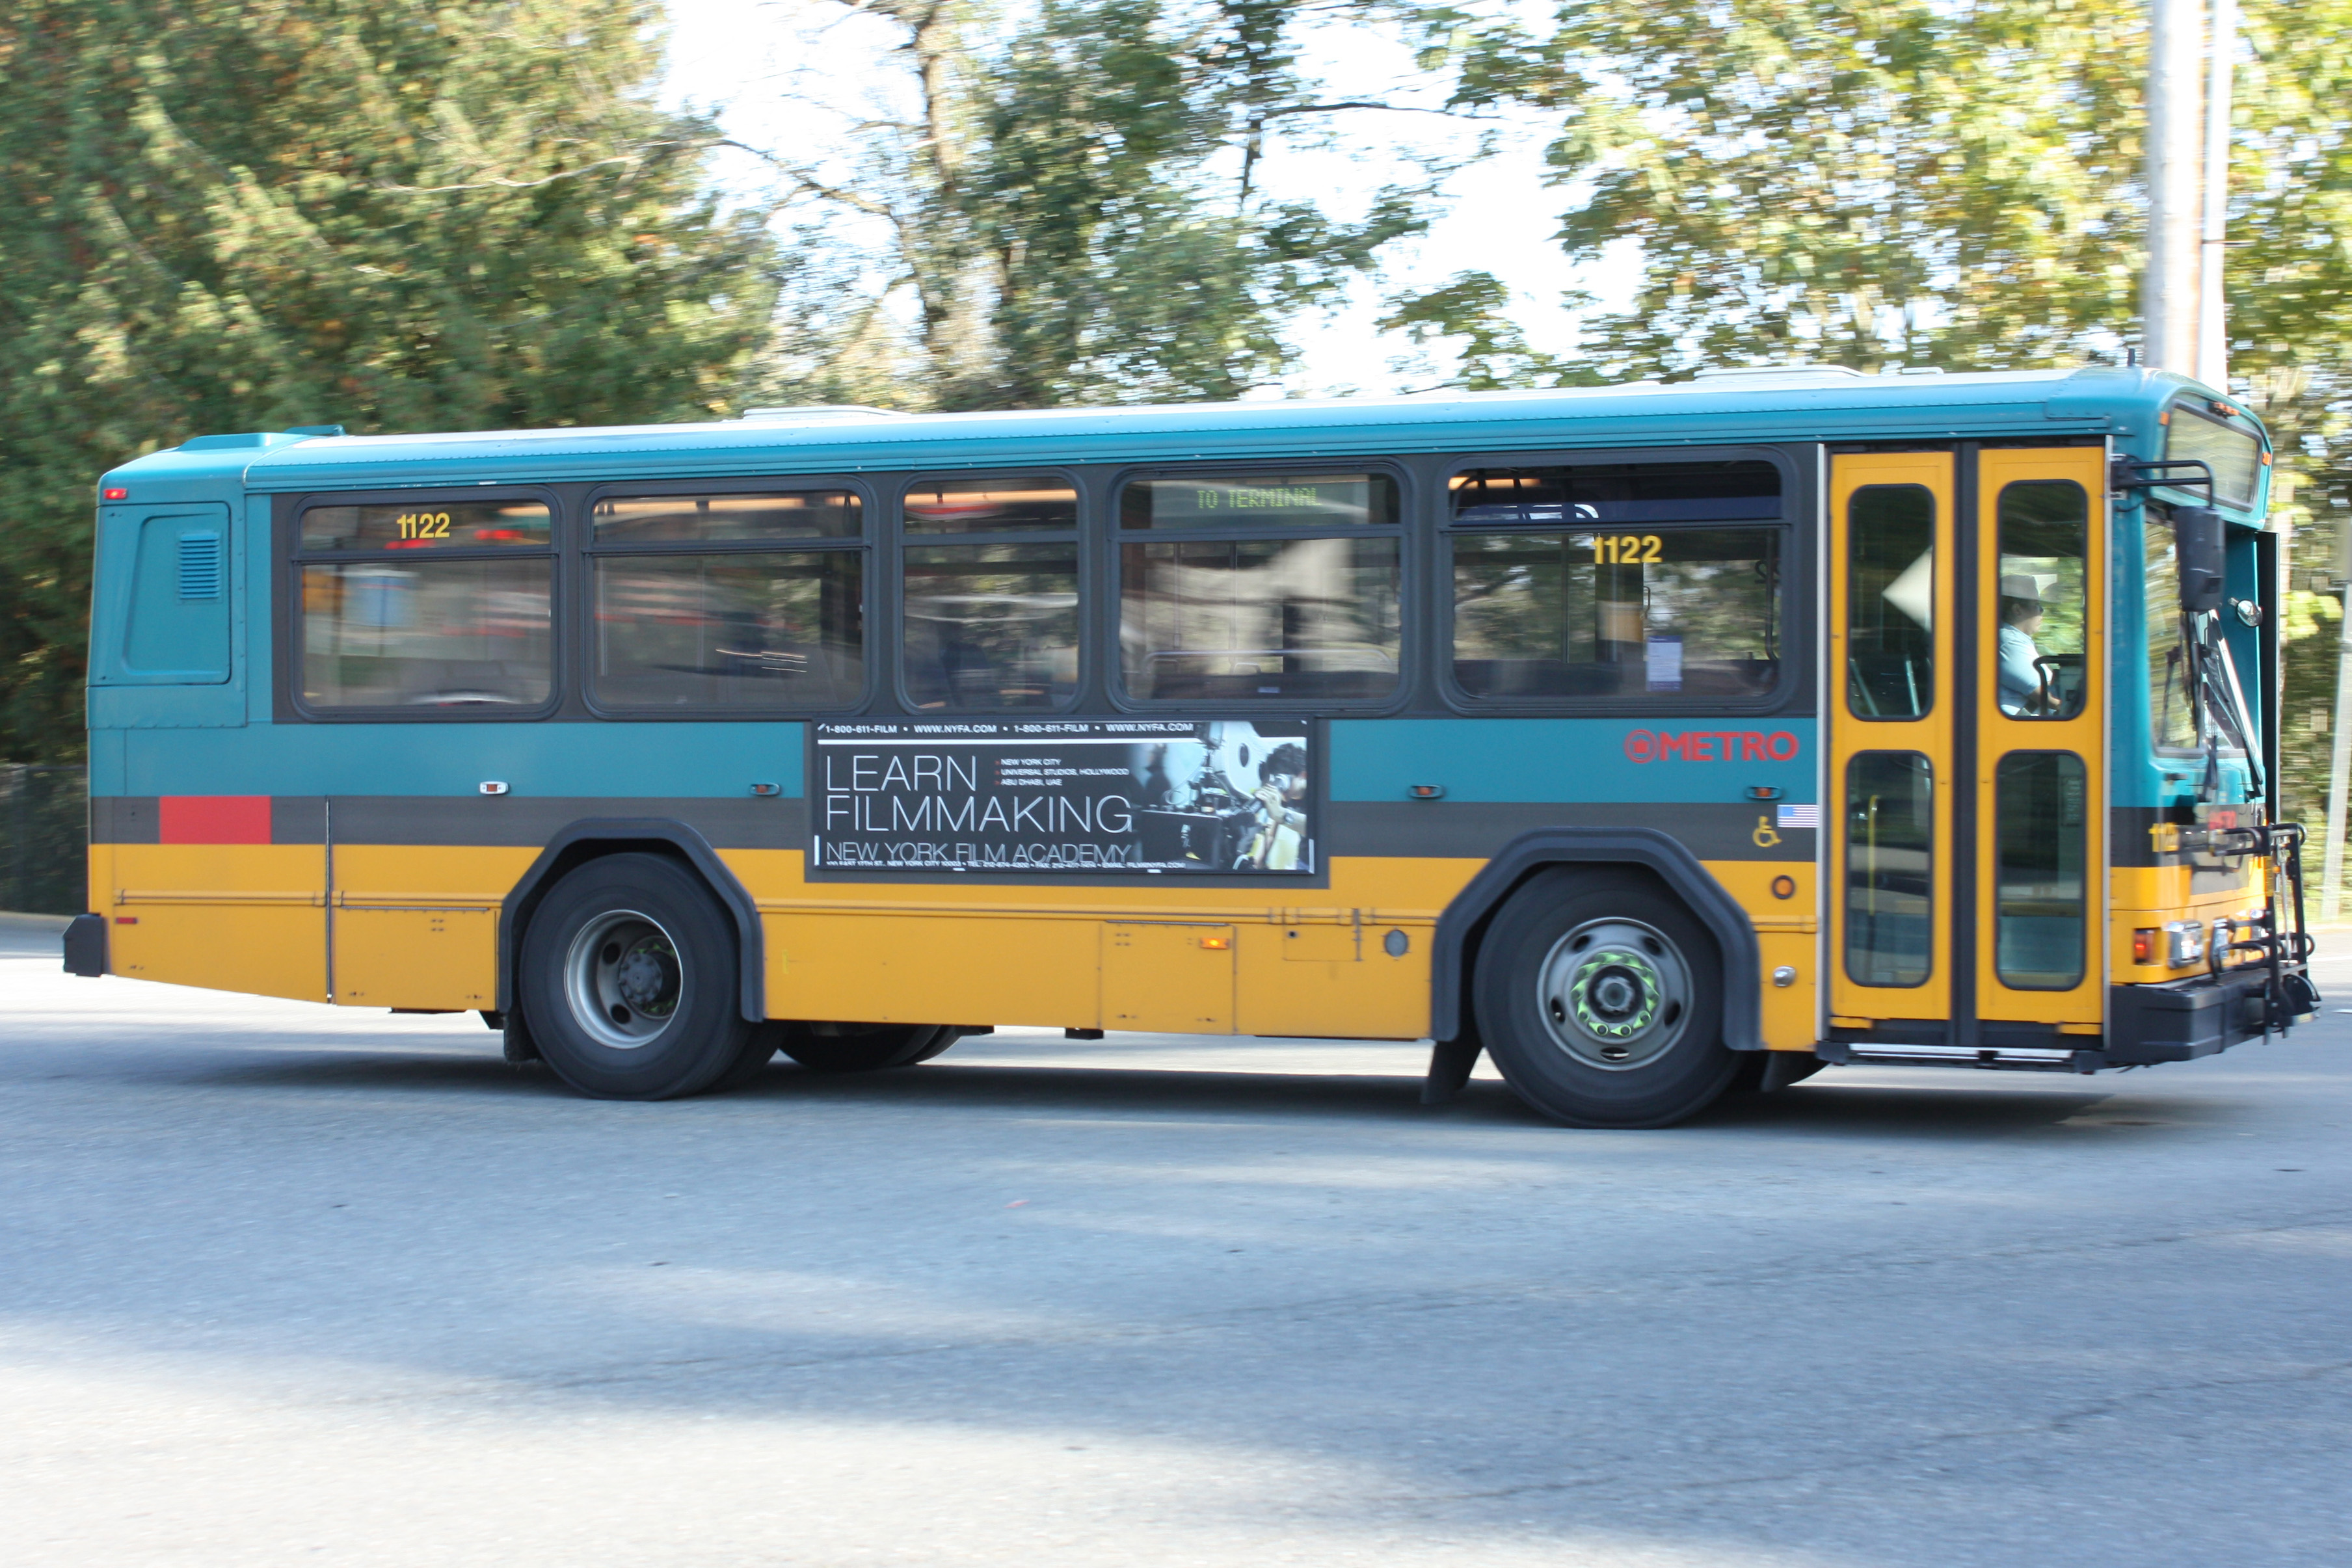 File:King County Metro Gillig PHANTOM 1122.jpg